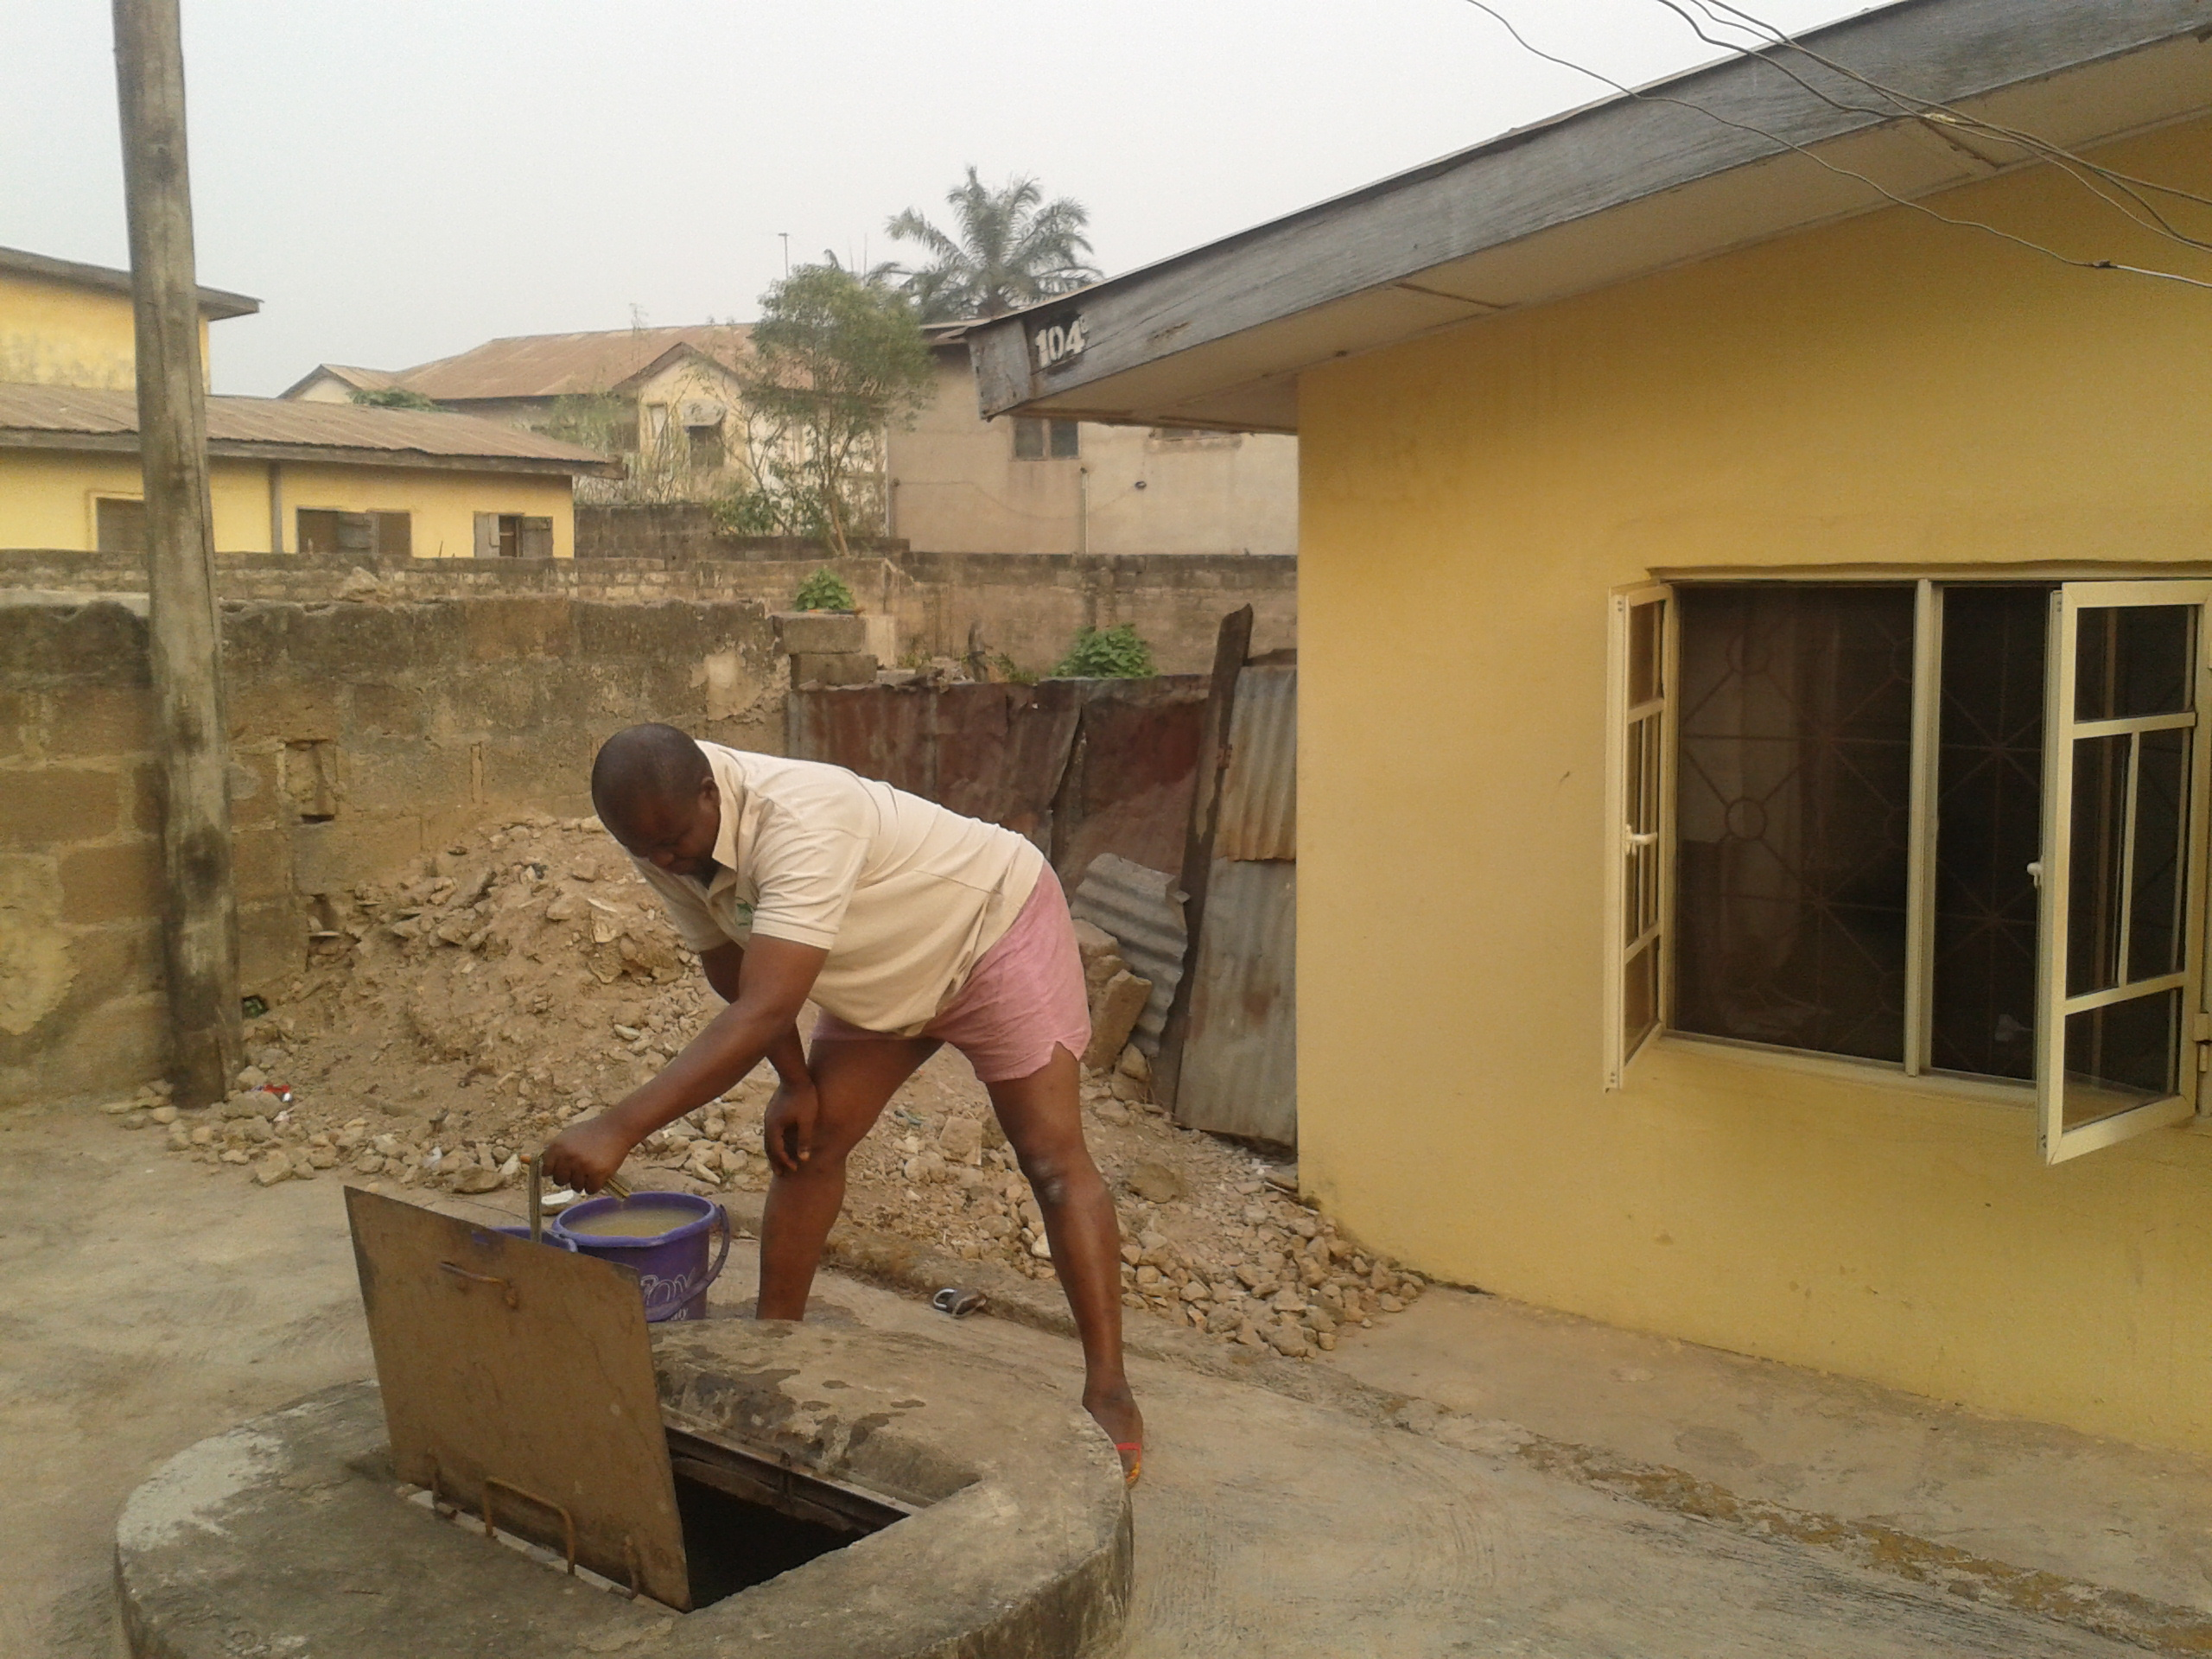 Fi fa kànga - Fetching water from the well.  Courtesy: @theyorubablog